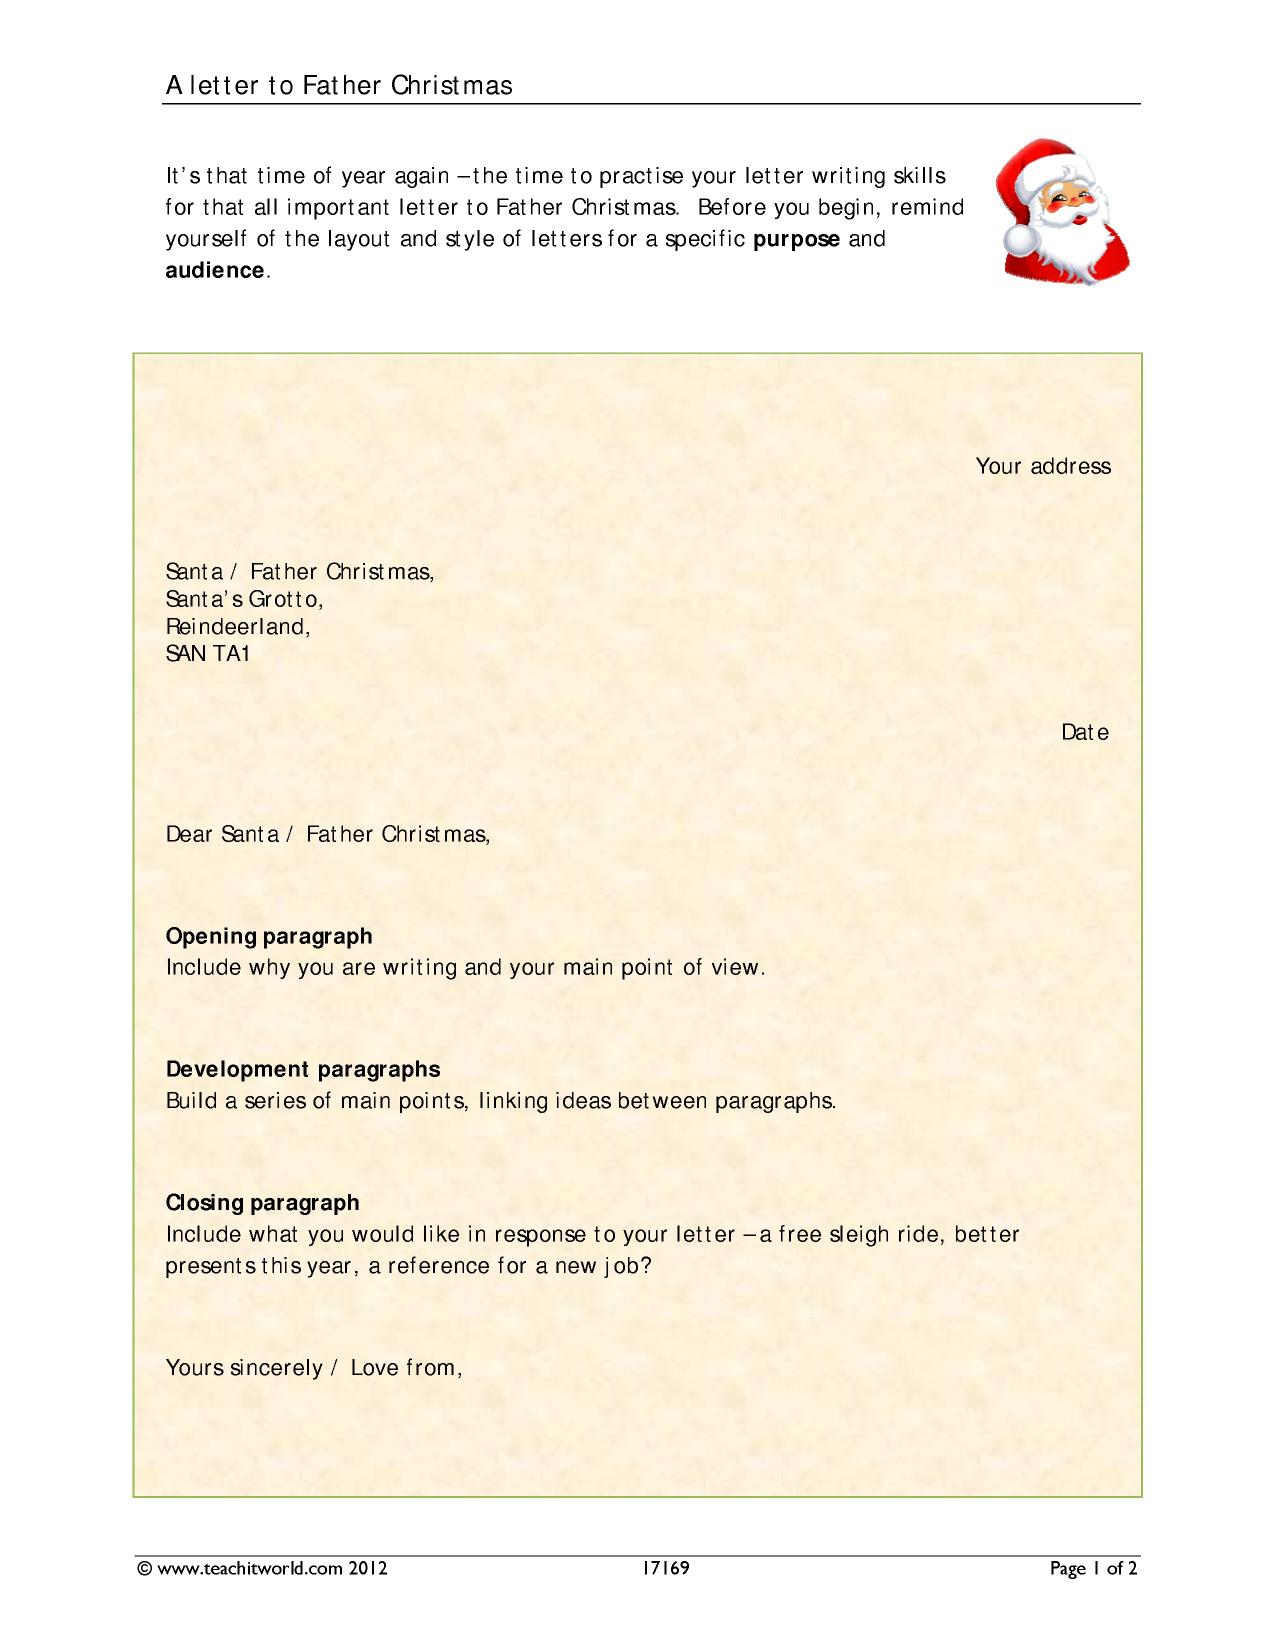 Christmas Letter Ideas.A Letter To Father Christmas